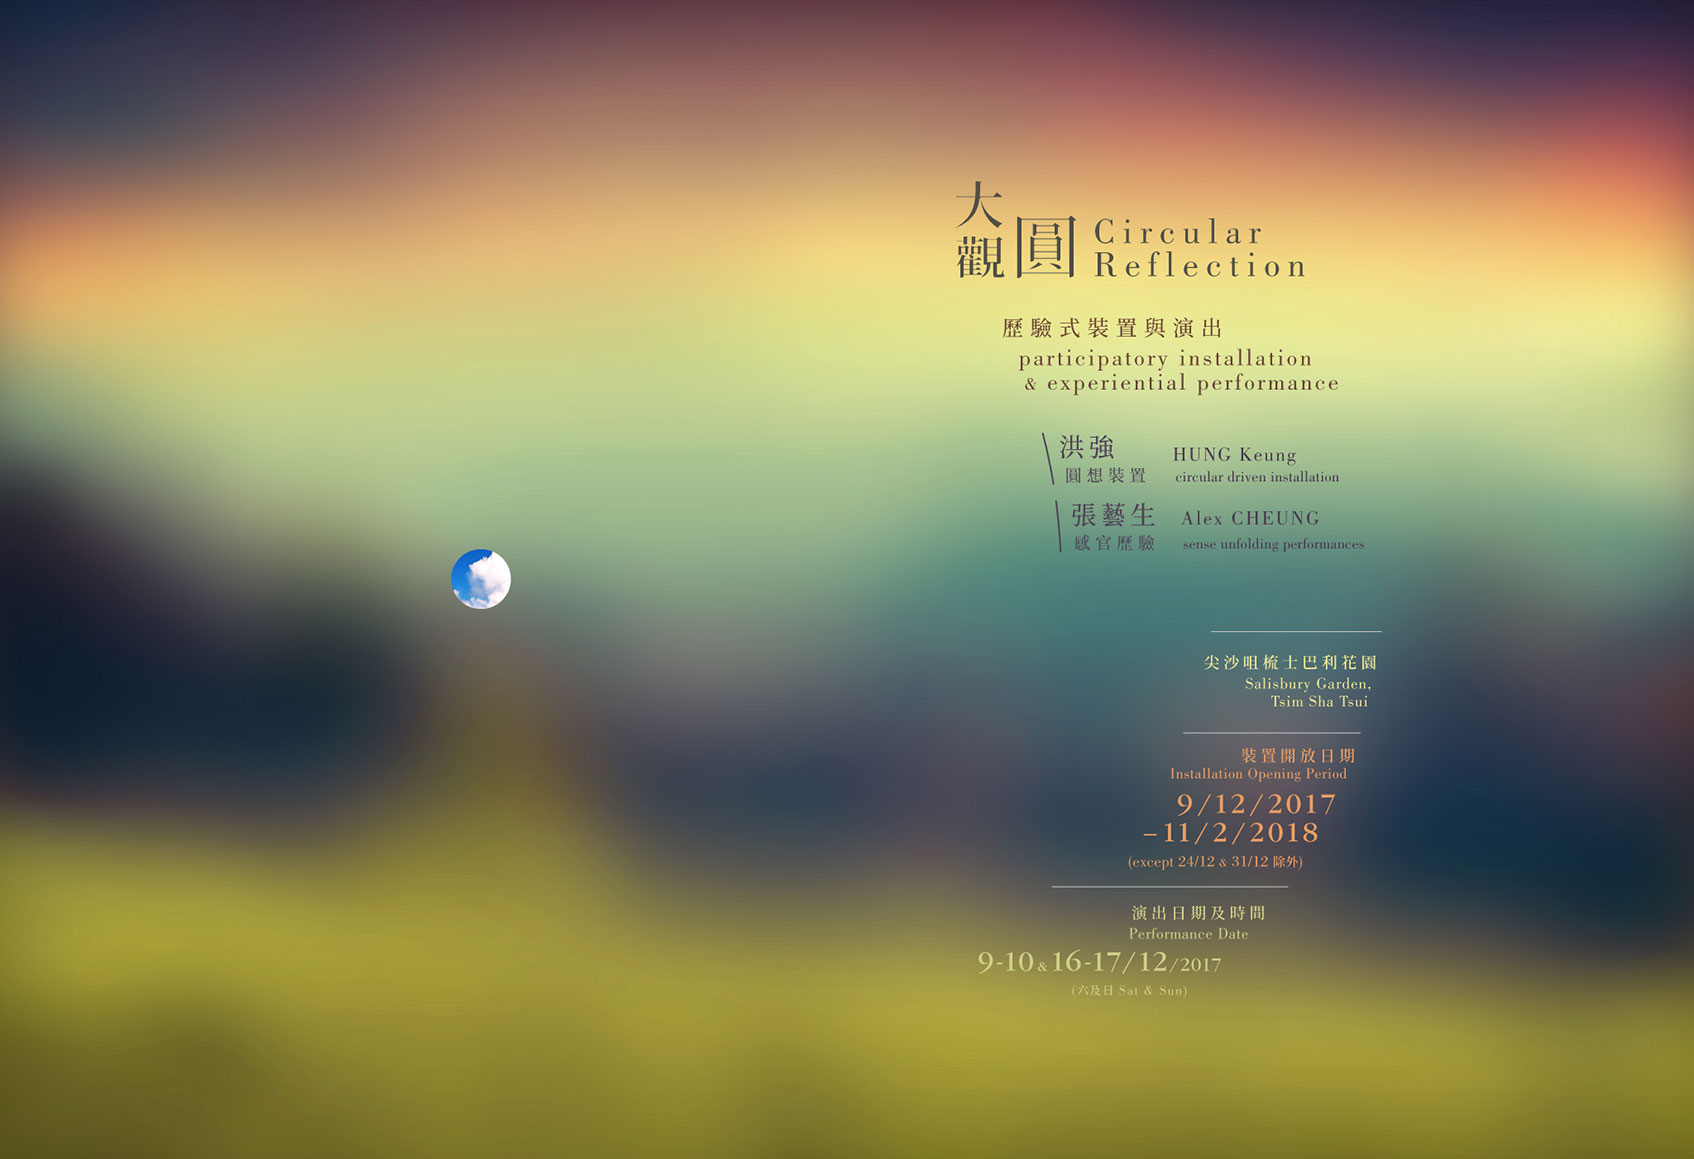 PUTYOURSELF.in ticketing 售票平台 - 大觀圓 Circular Reflection (10 Feb)